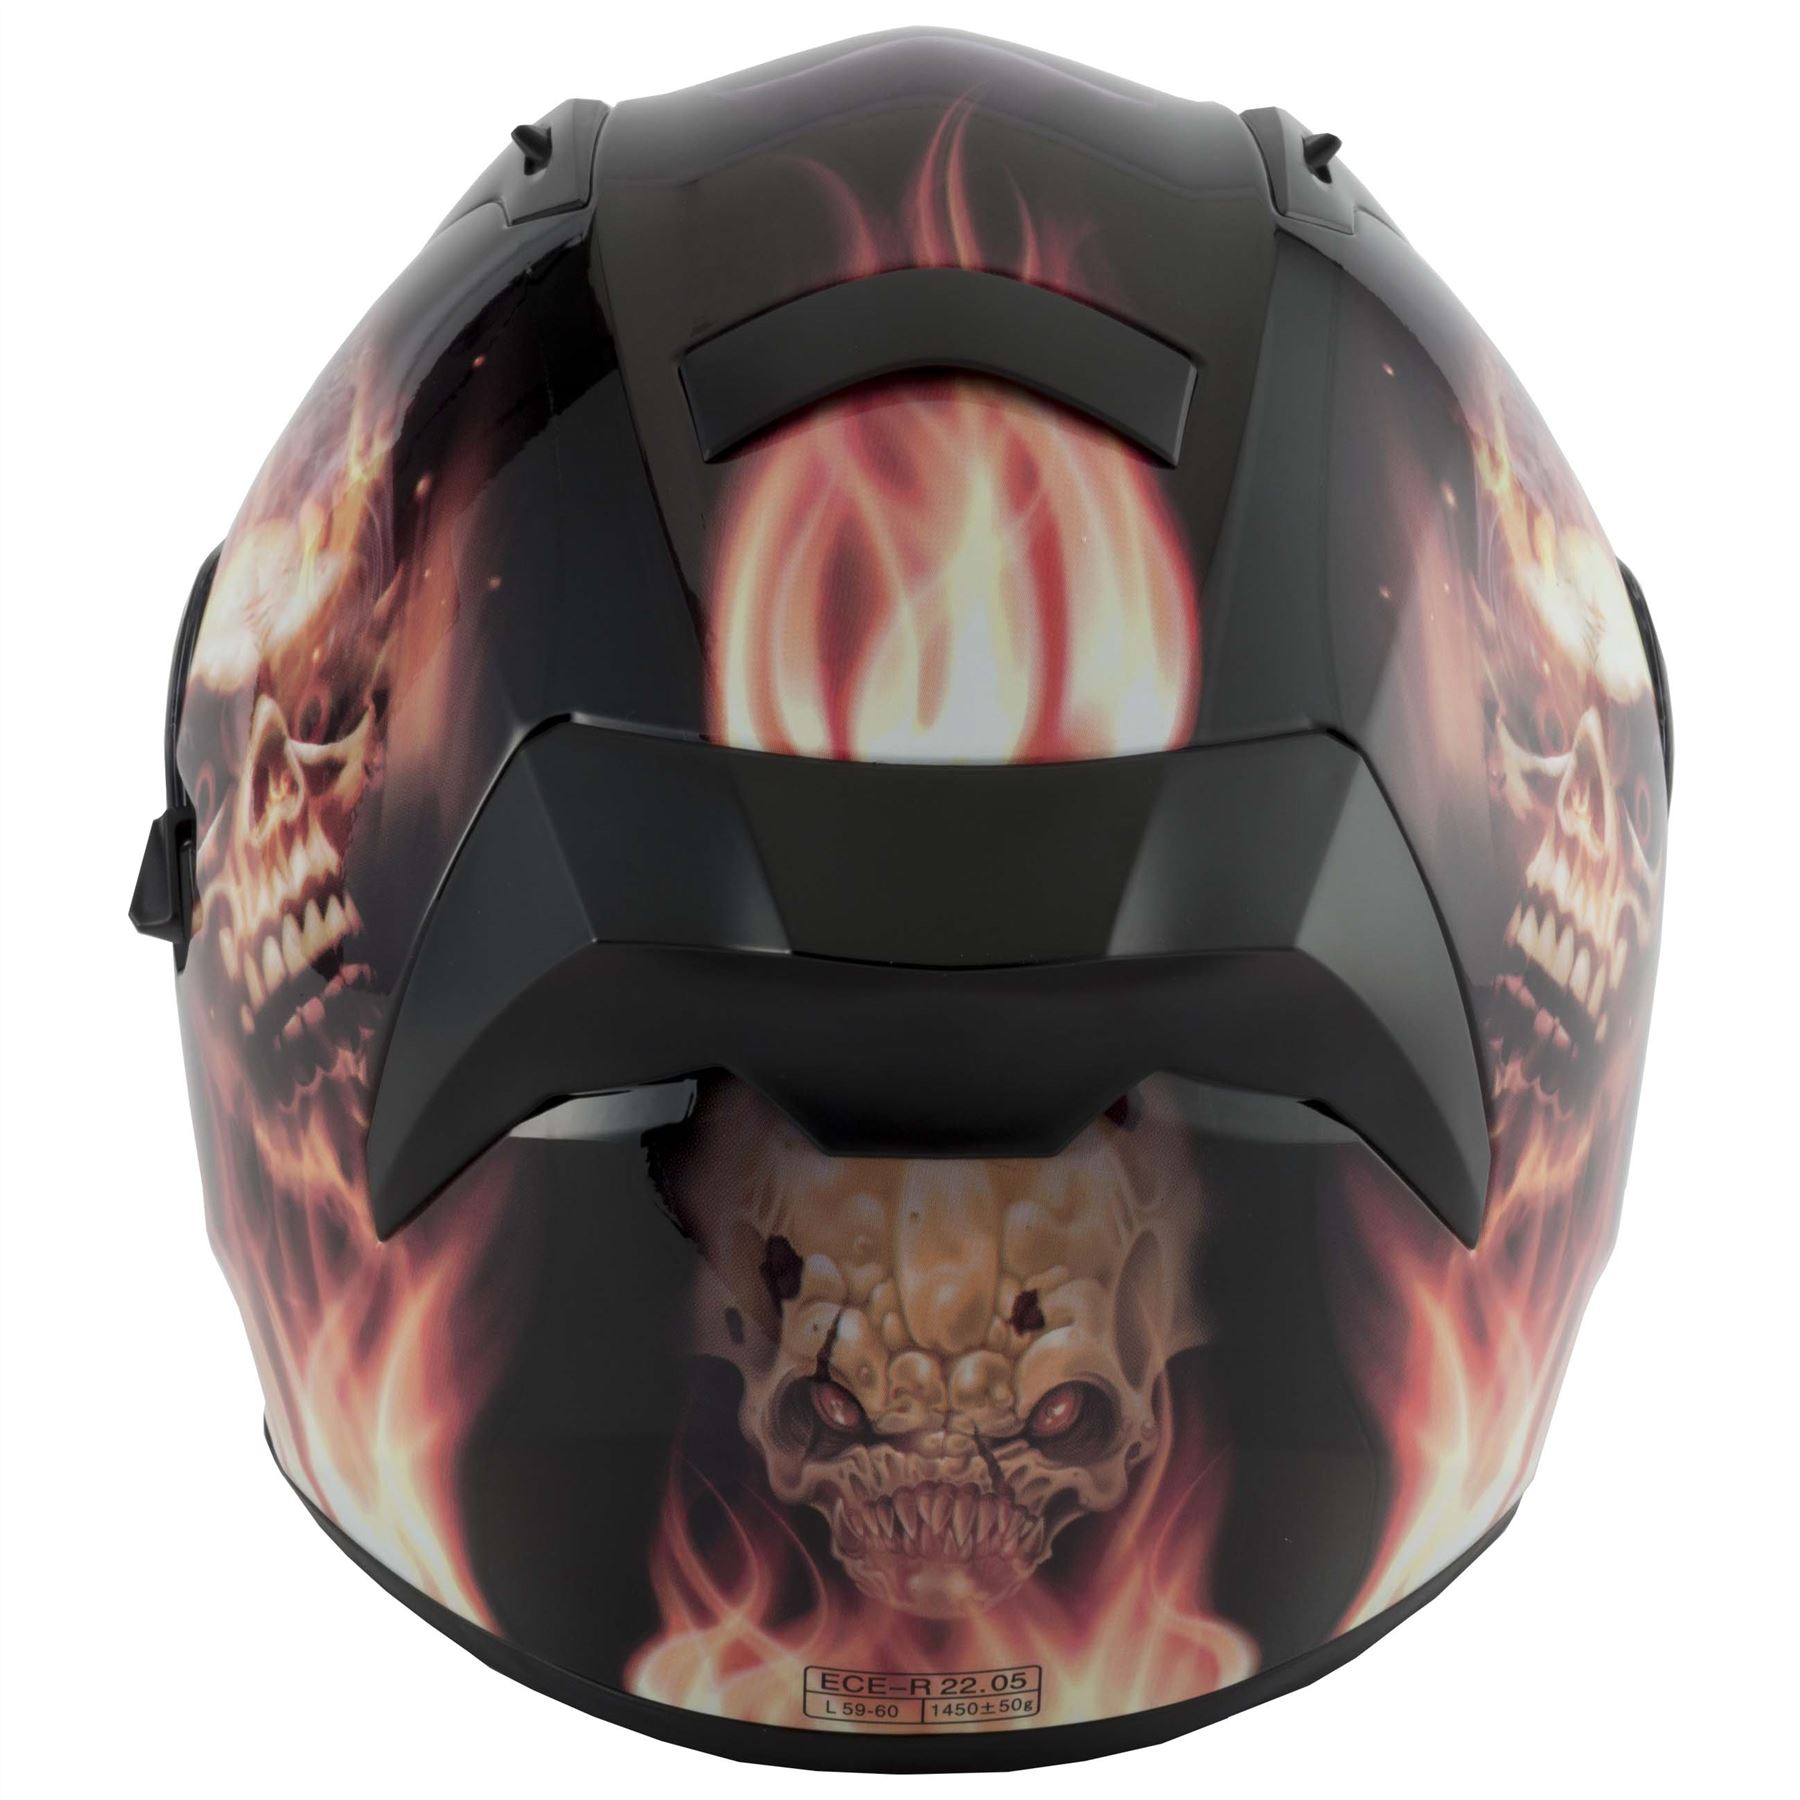 thumbnail 17 - VCAN V128 Dragon Skull Monster Motorcycle Bike Helmet With Drop Down Sun Visor